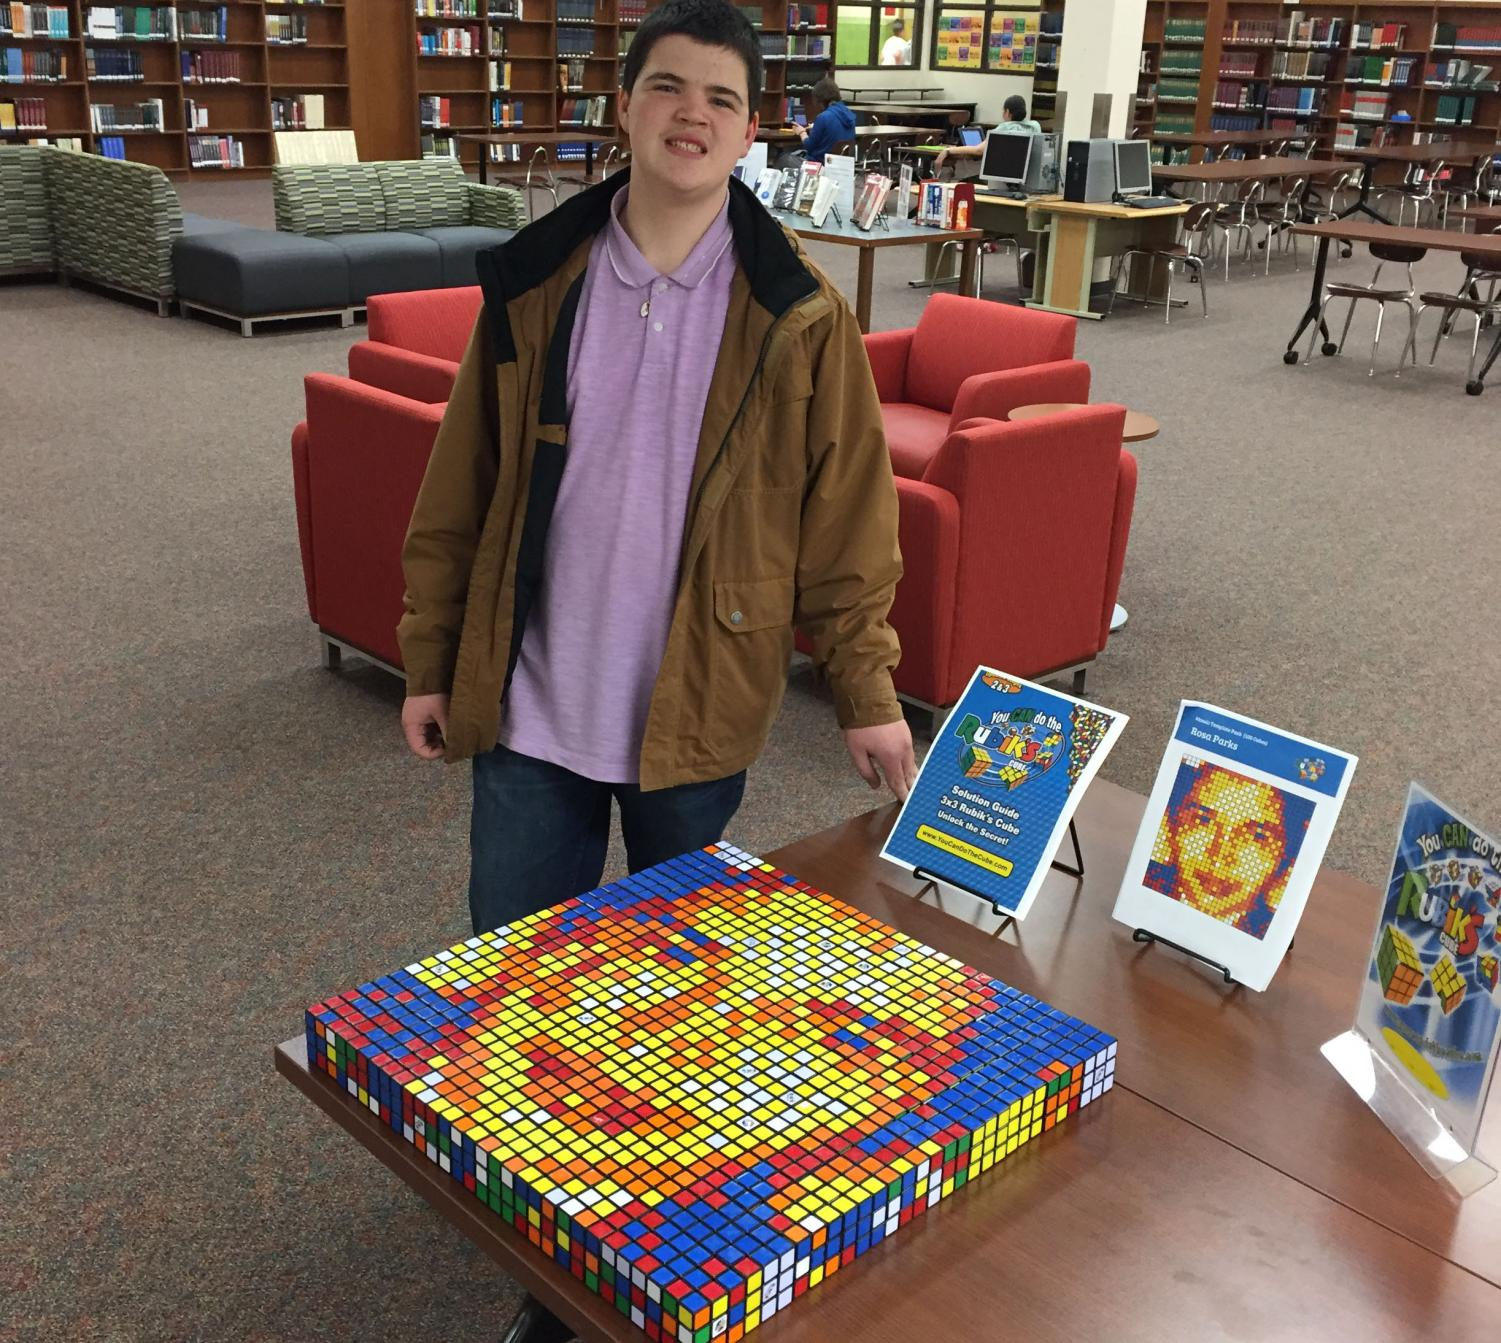 """A master at the Rubik's Cube, junior Jake Hudson finished the library's first Rubik's cube challenge. He spent approximately an hour and thirty minutes working on the project. """"I just like doing Rubik's Cubes because I like to see what people can create with them, and I just wanted to see what the experience would be like for me to create a picture."""""""